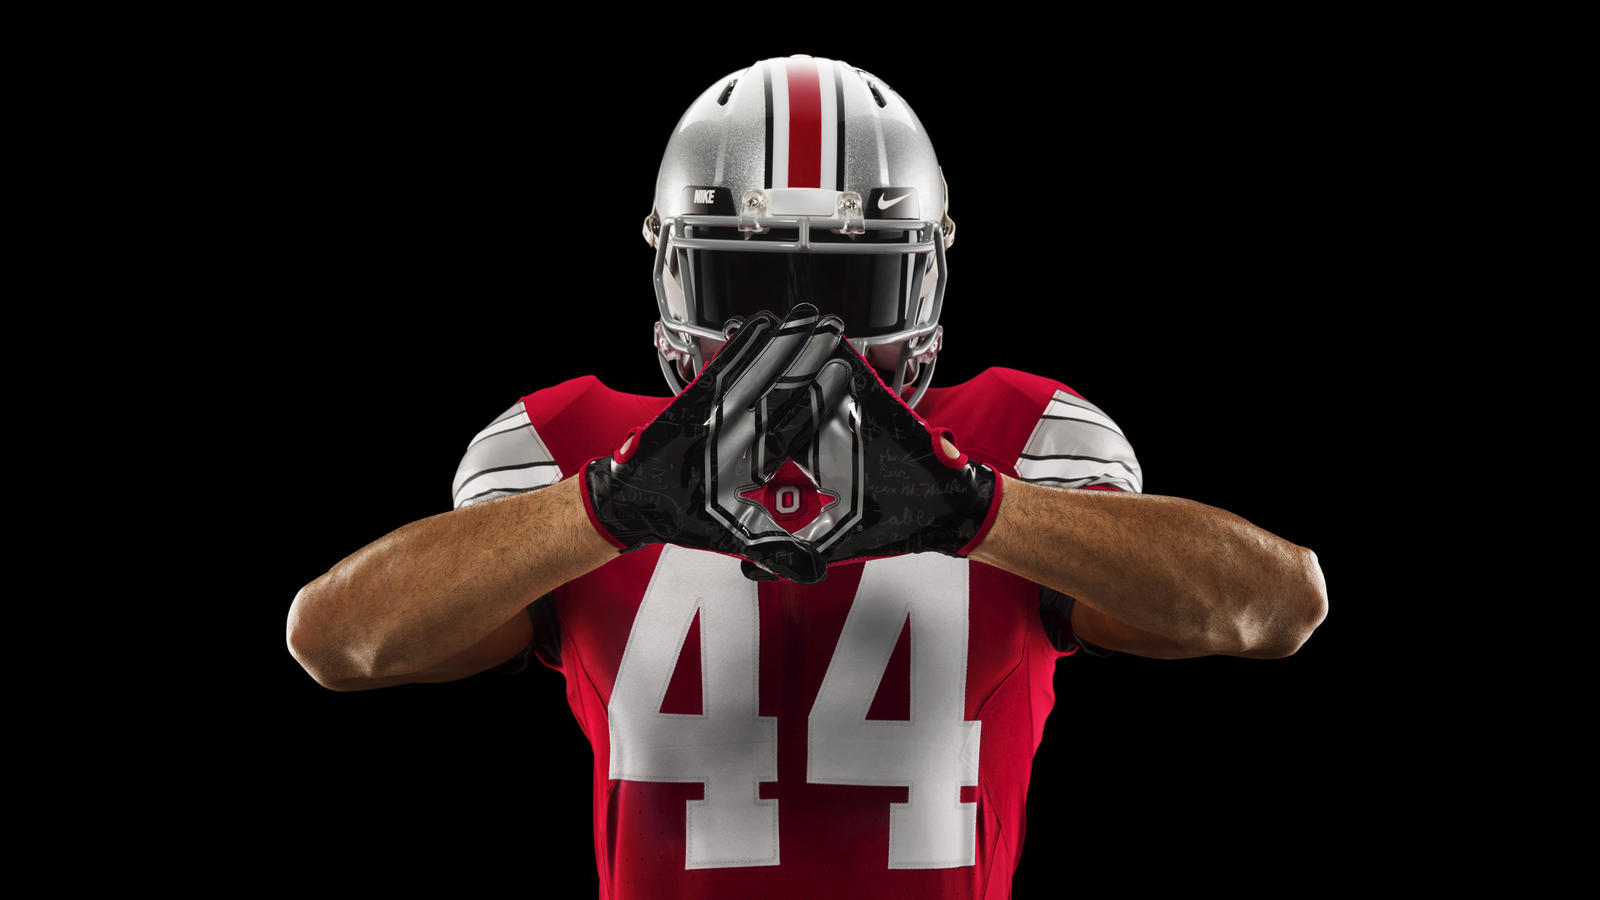 HO14_NFB_NCAA_Ohio_Uniform_1288